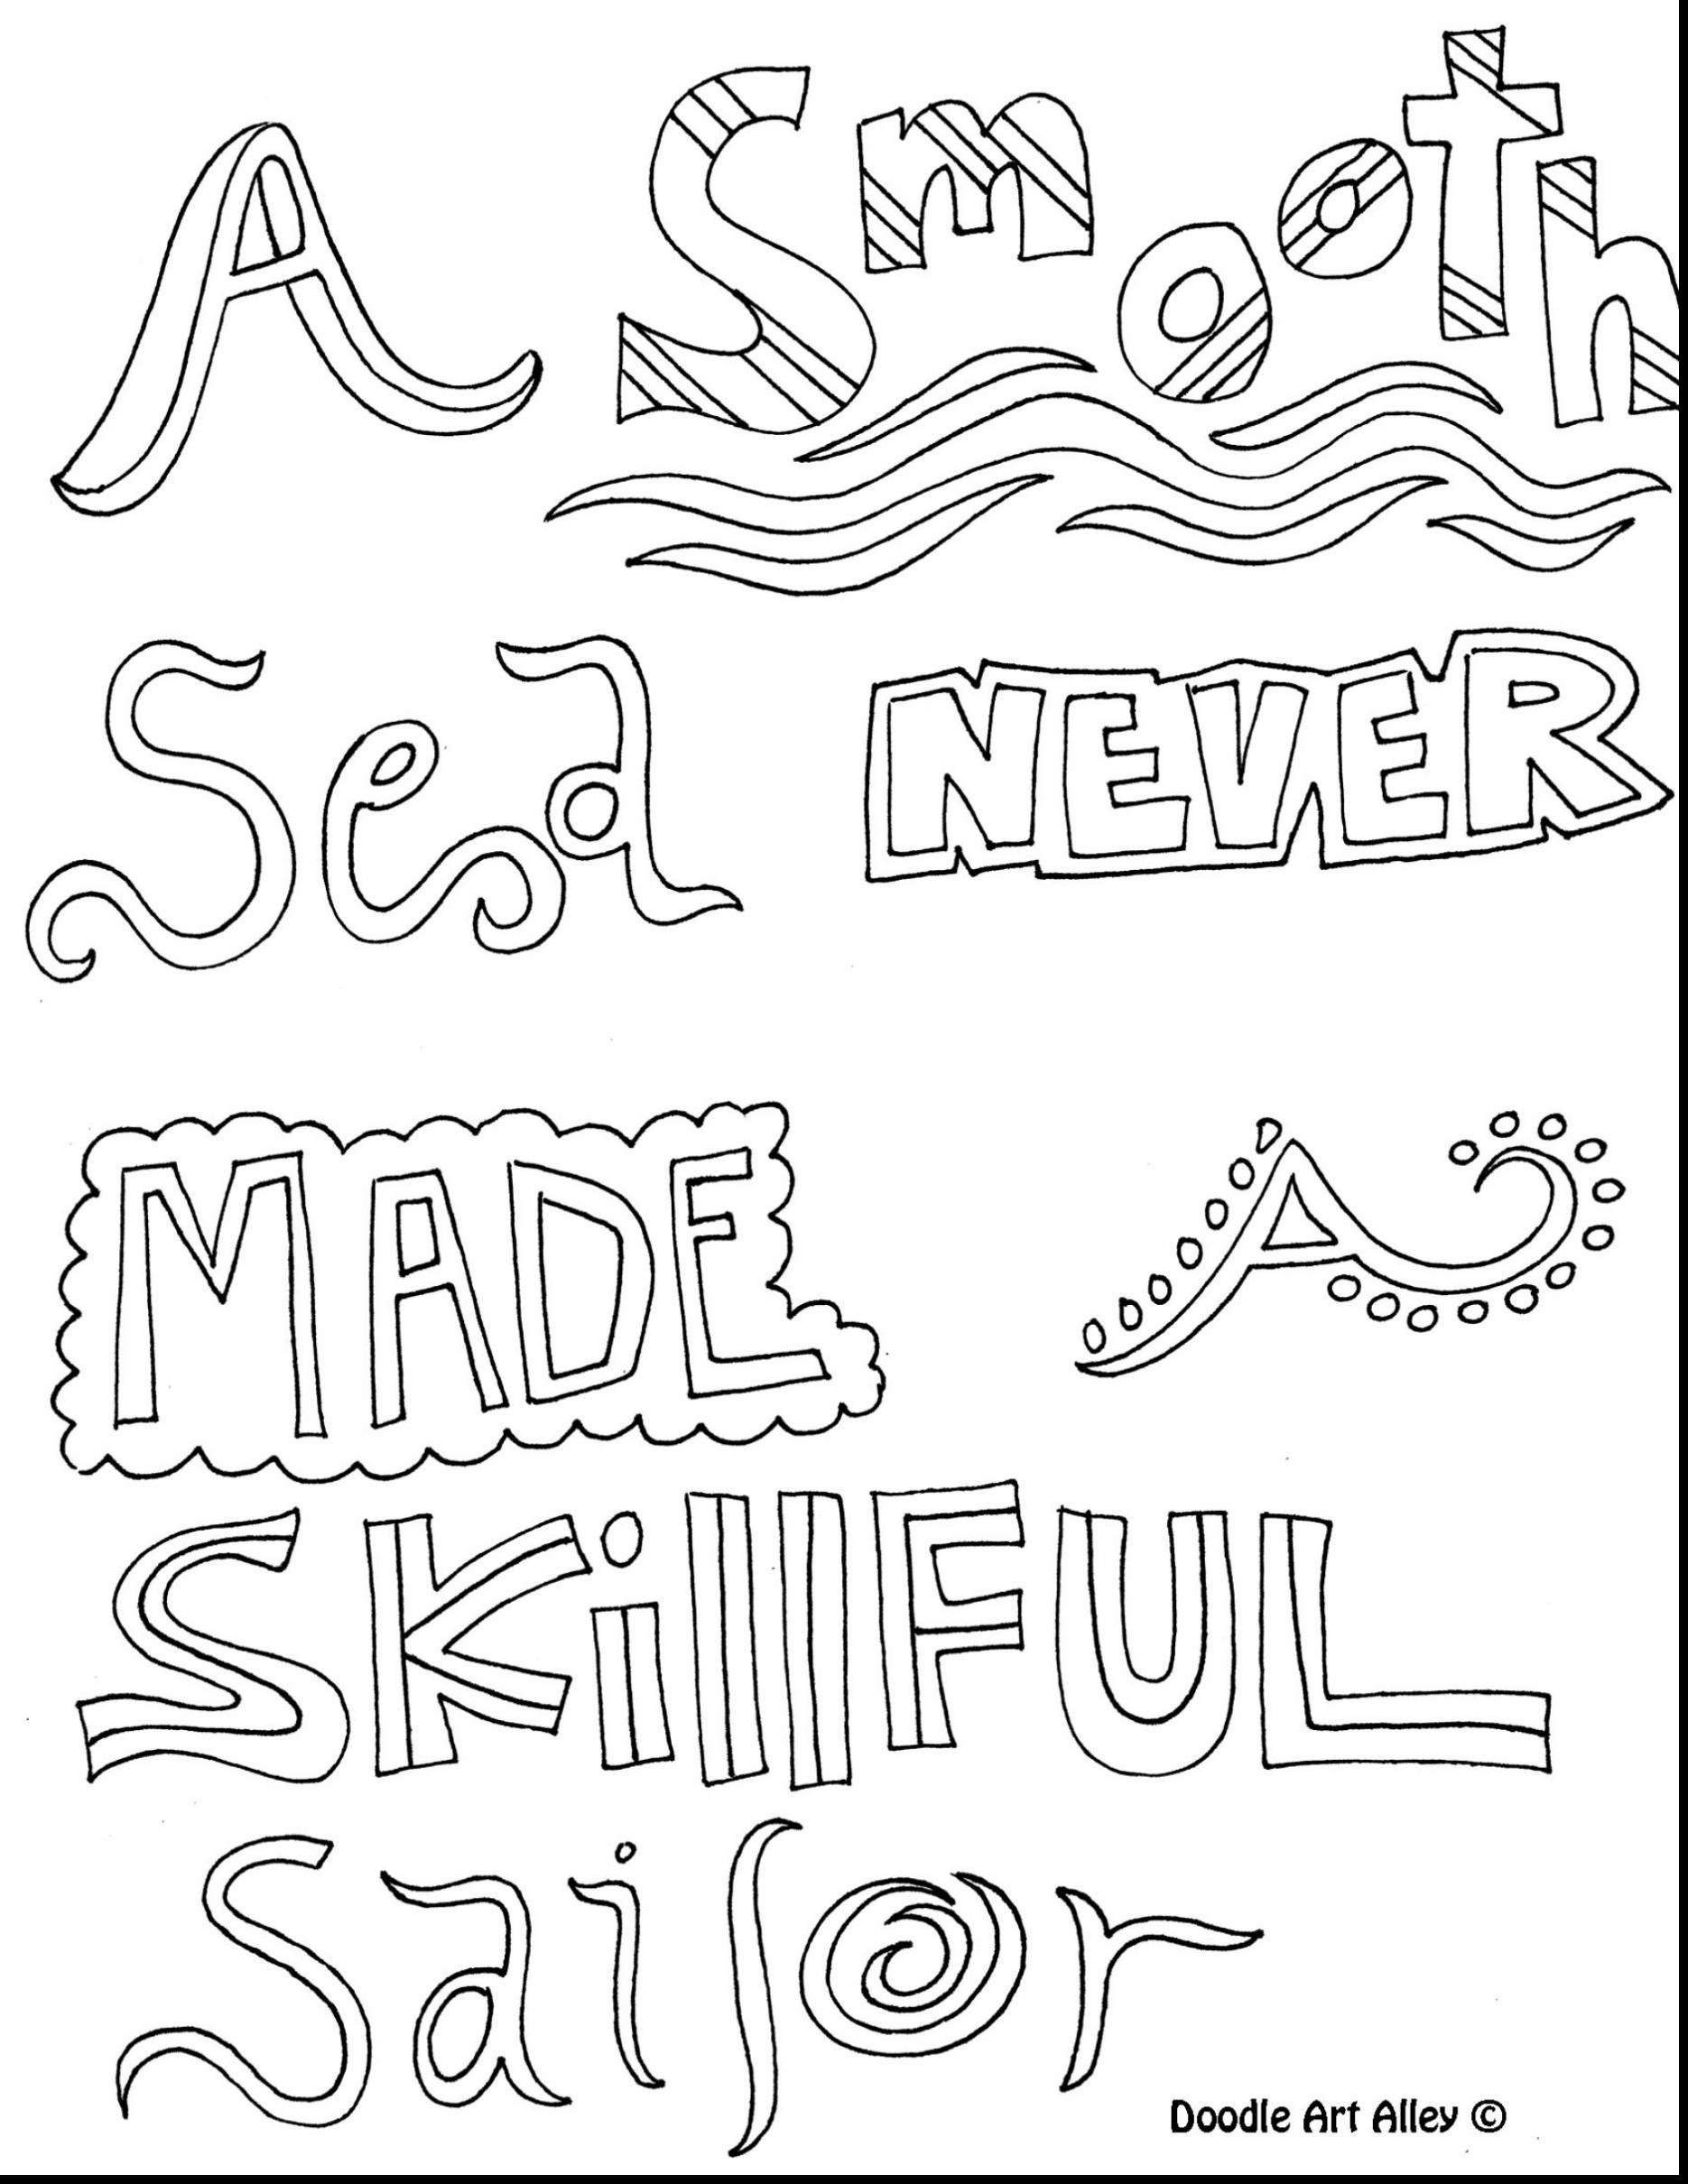 mindfulness coloring pages Download-Quotes Coloring Pages Inspirational Coloring Pages Beautiful Printable Cds 0d – Printable Inspirational Quote Coloring 9-b